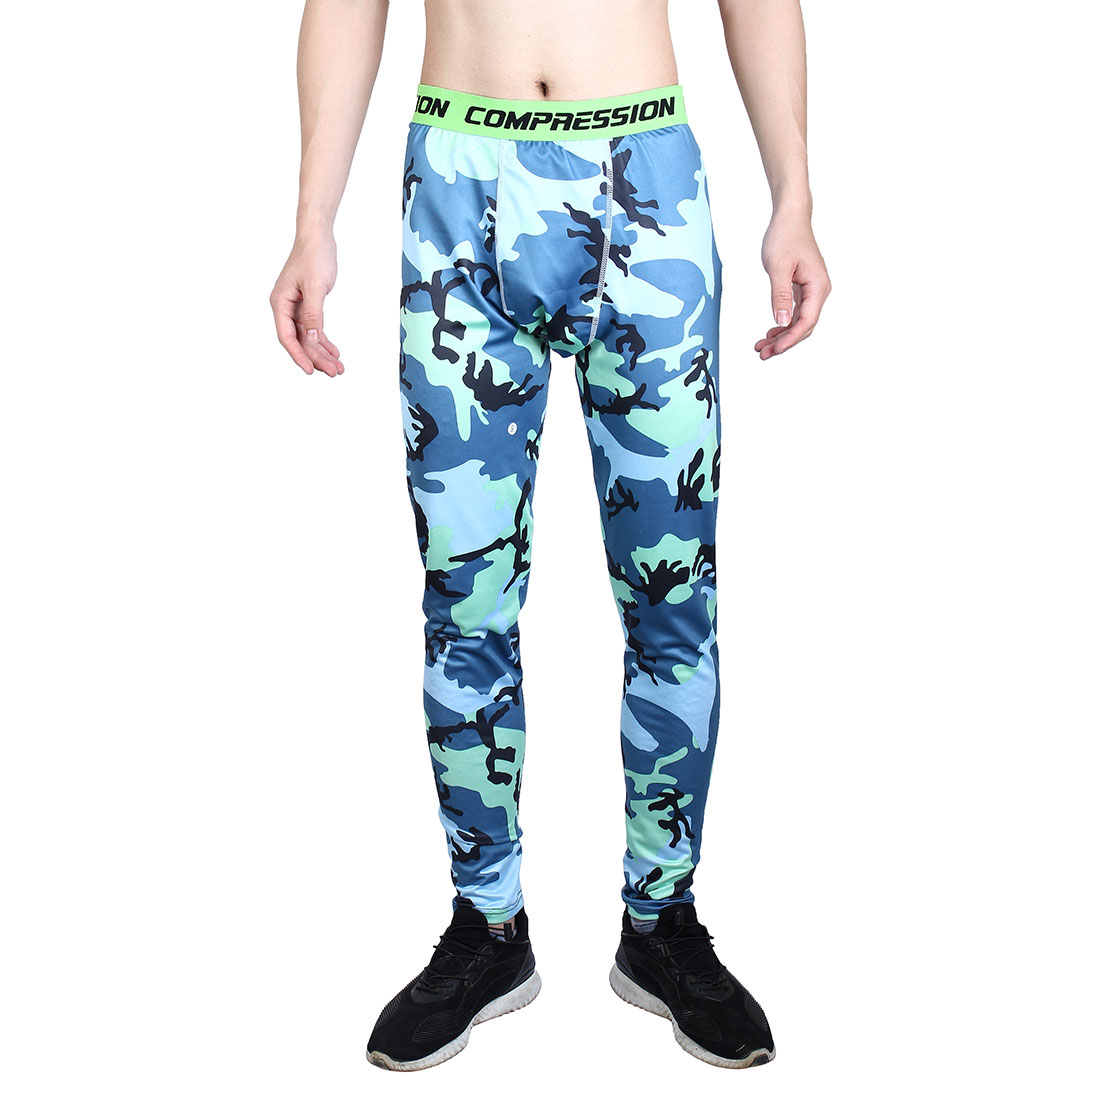 Men Polyester Fiber Compression Base Layer Pants Green Camouflage XXL/US W32